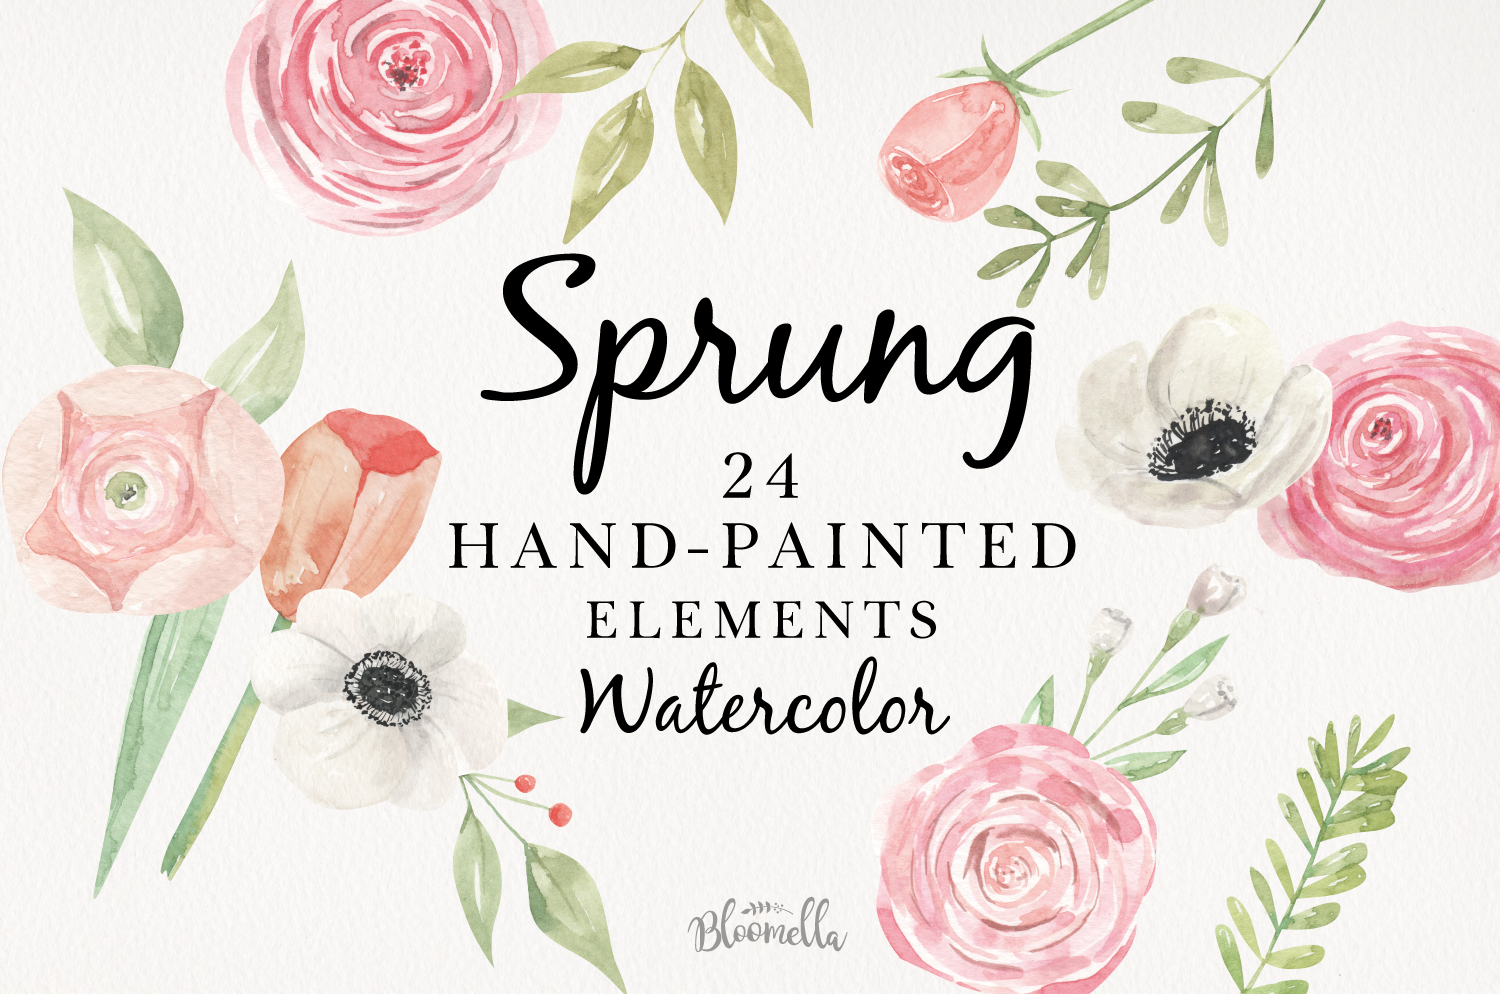 Sprung Watercolor Elements Flowers Pink Tulips Spring Peach example image 1